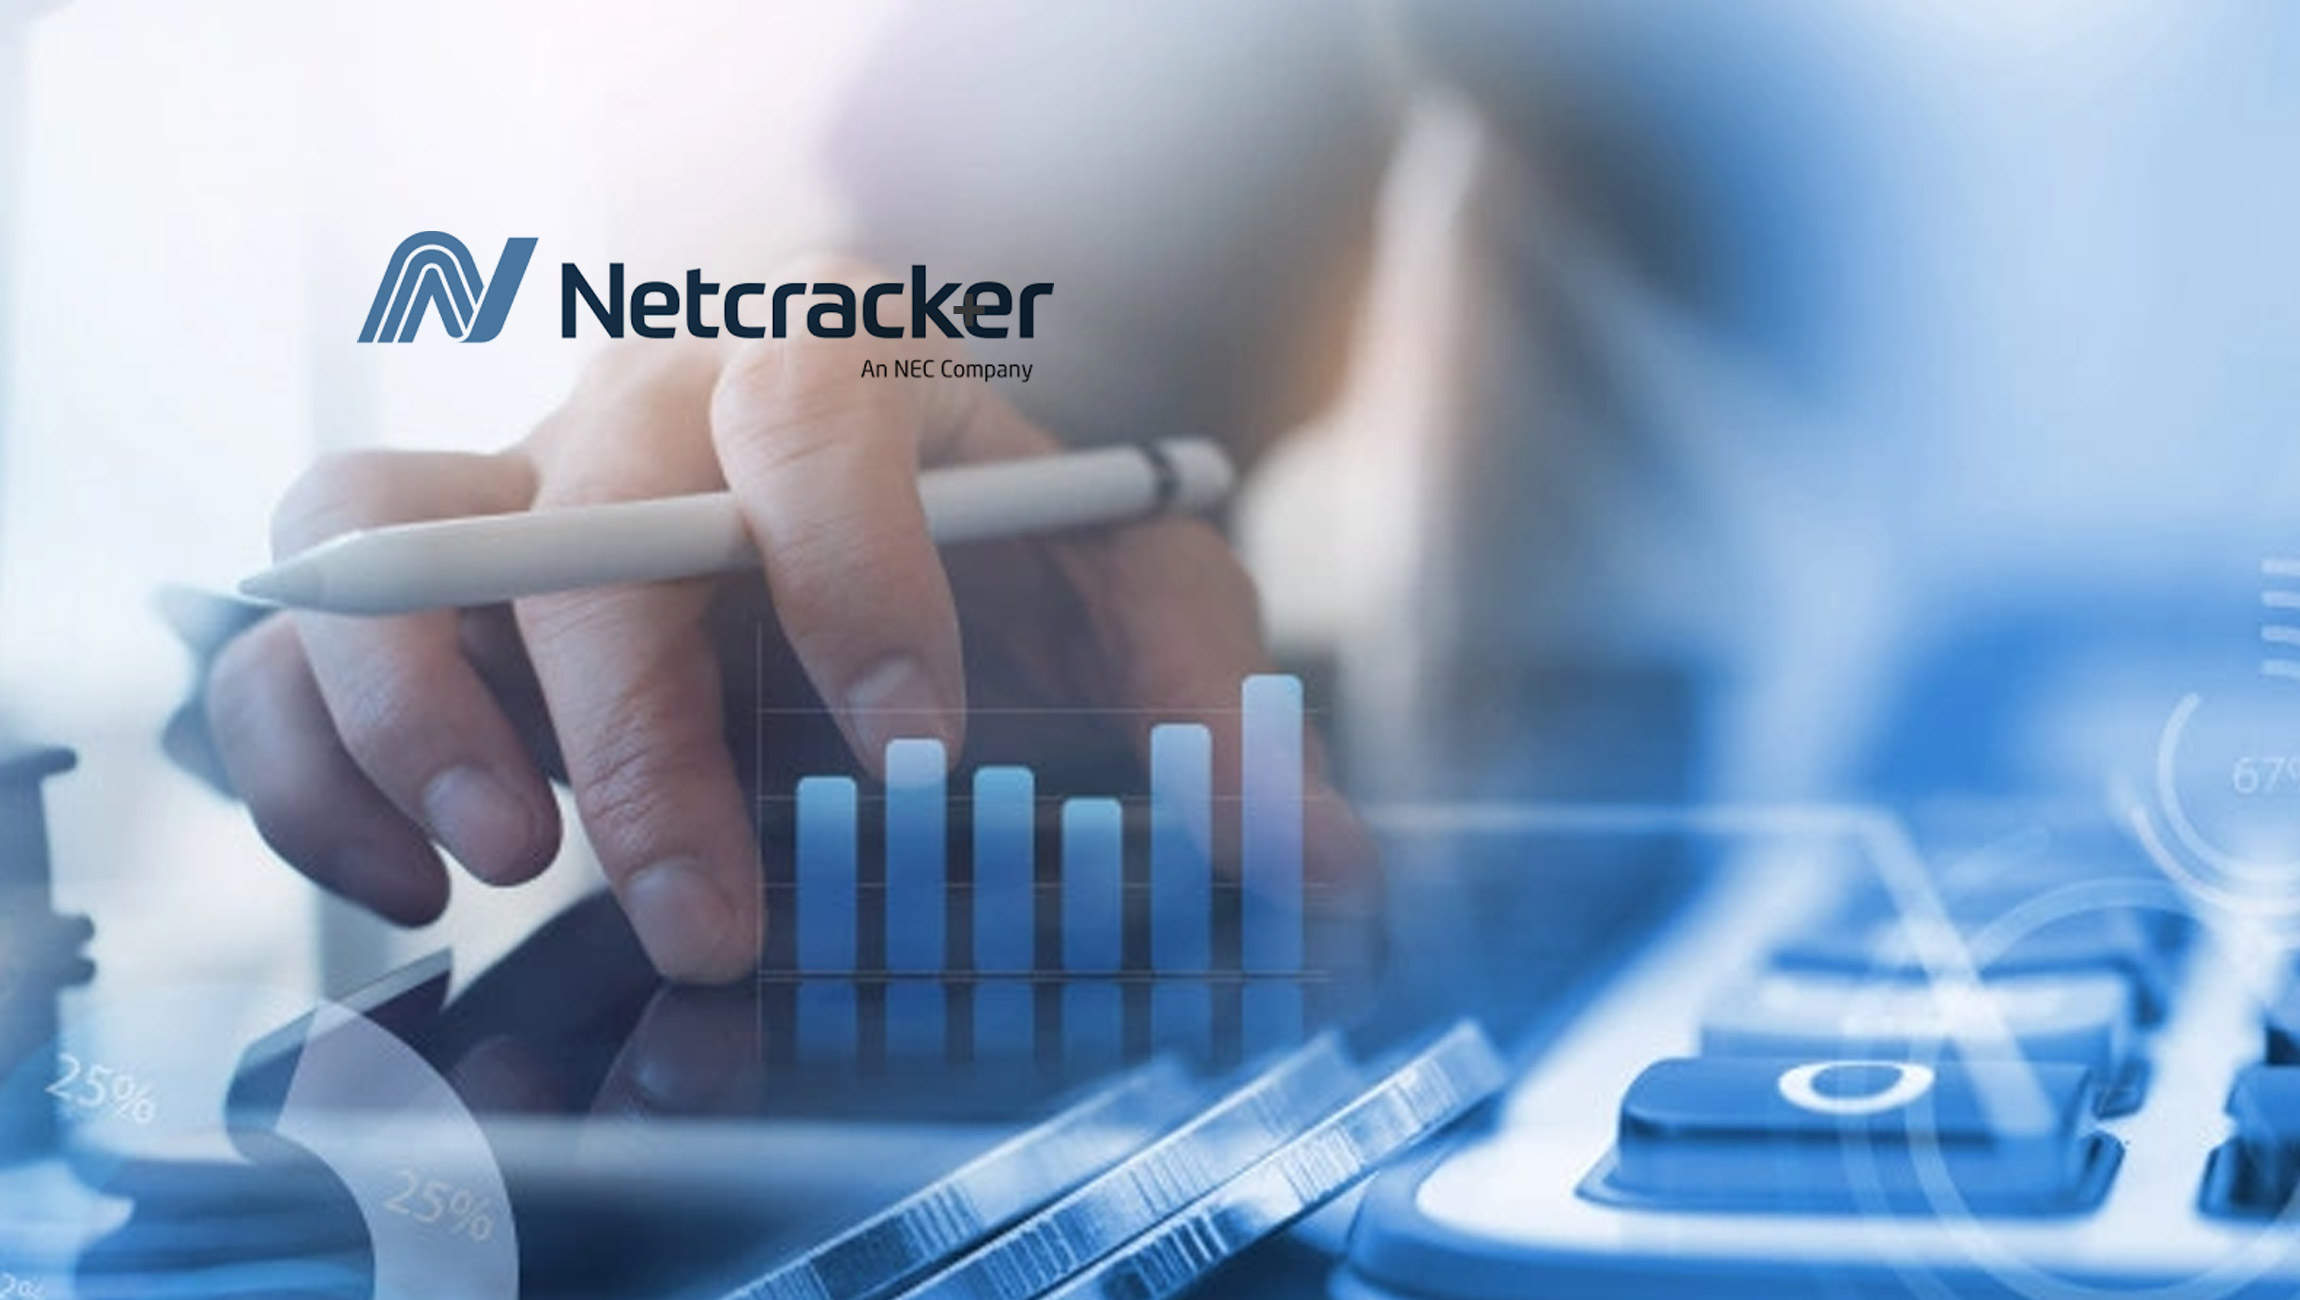 GlobalData Names Netcracker a Leader in Revenue Management